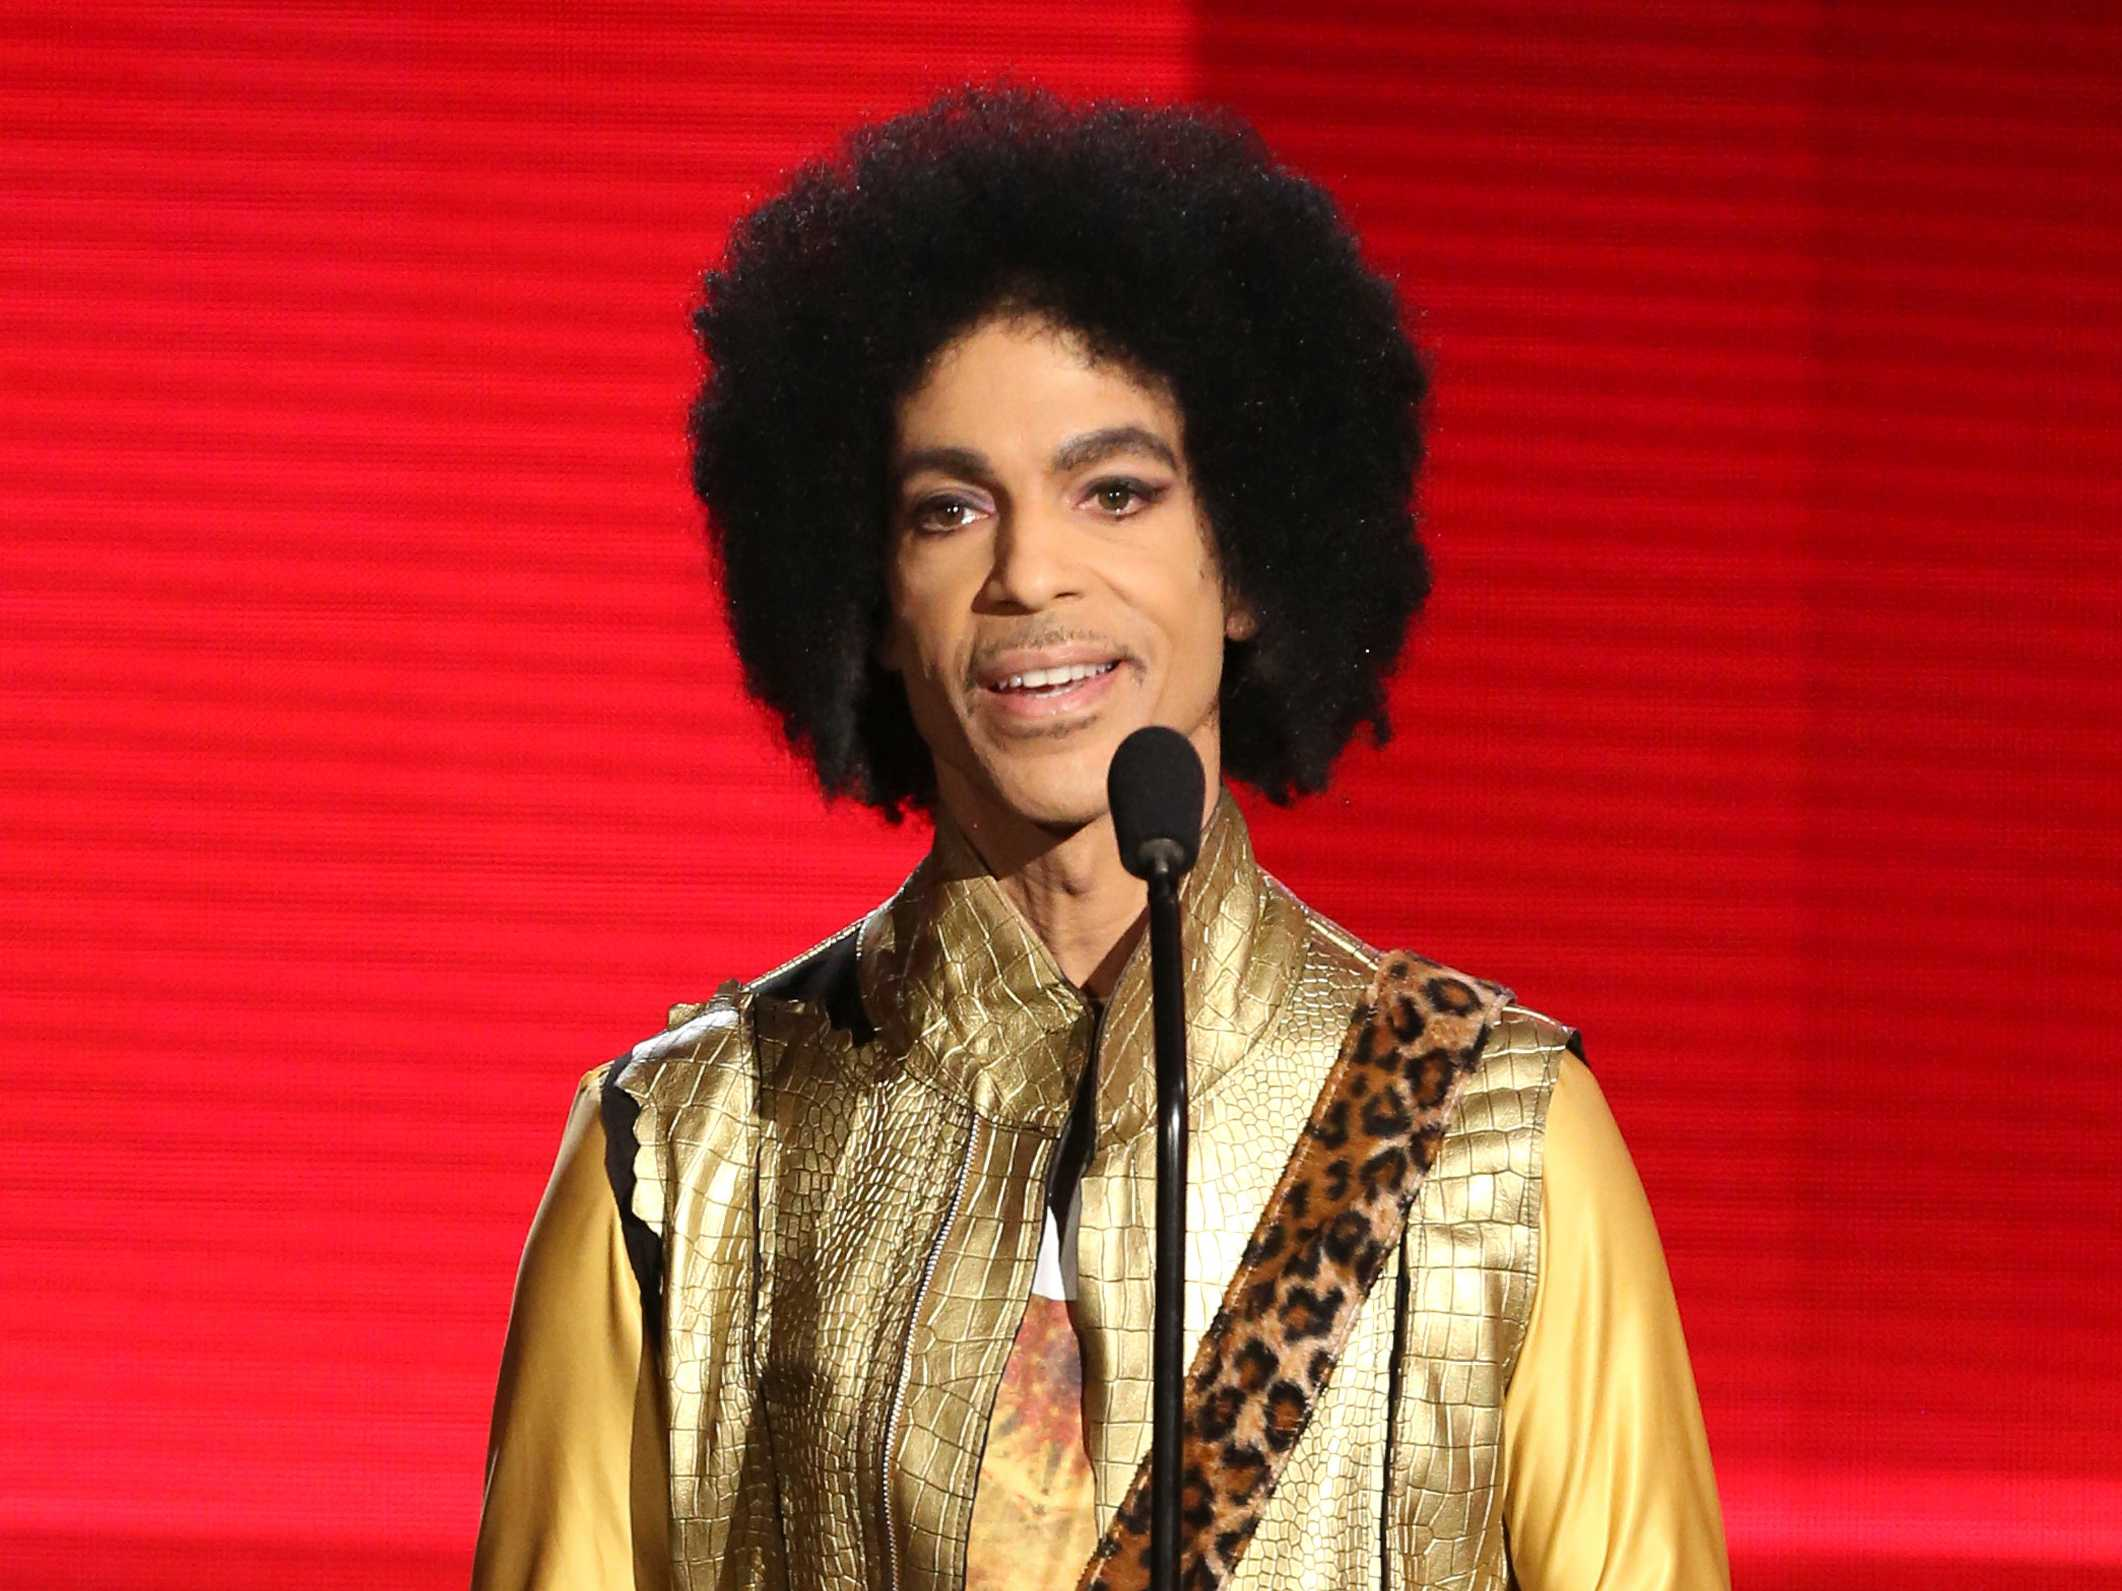 As Prince's Health Waned, Alarm Grew in Inner Circle